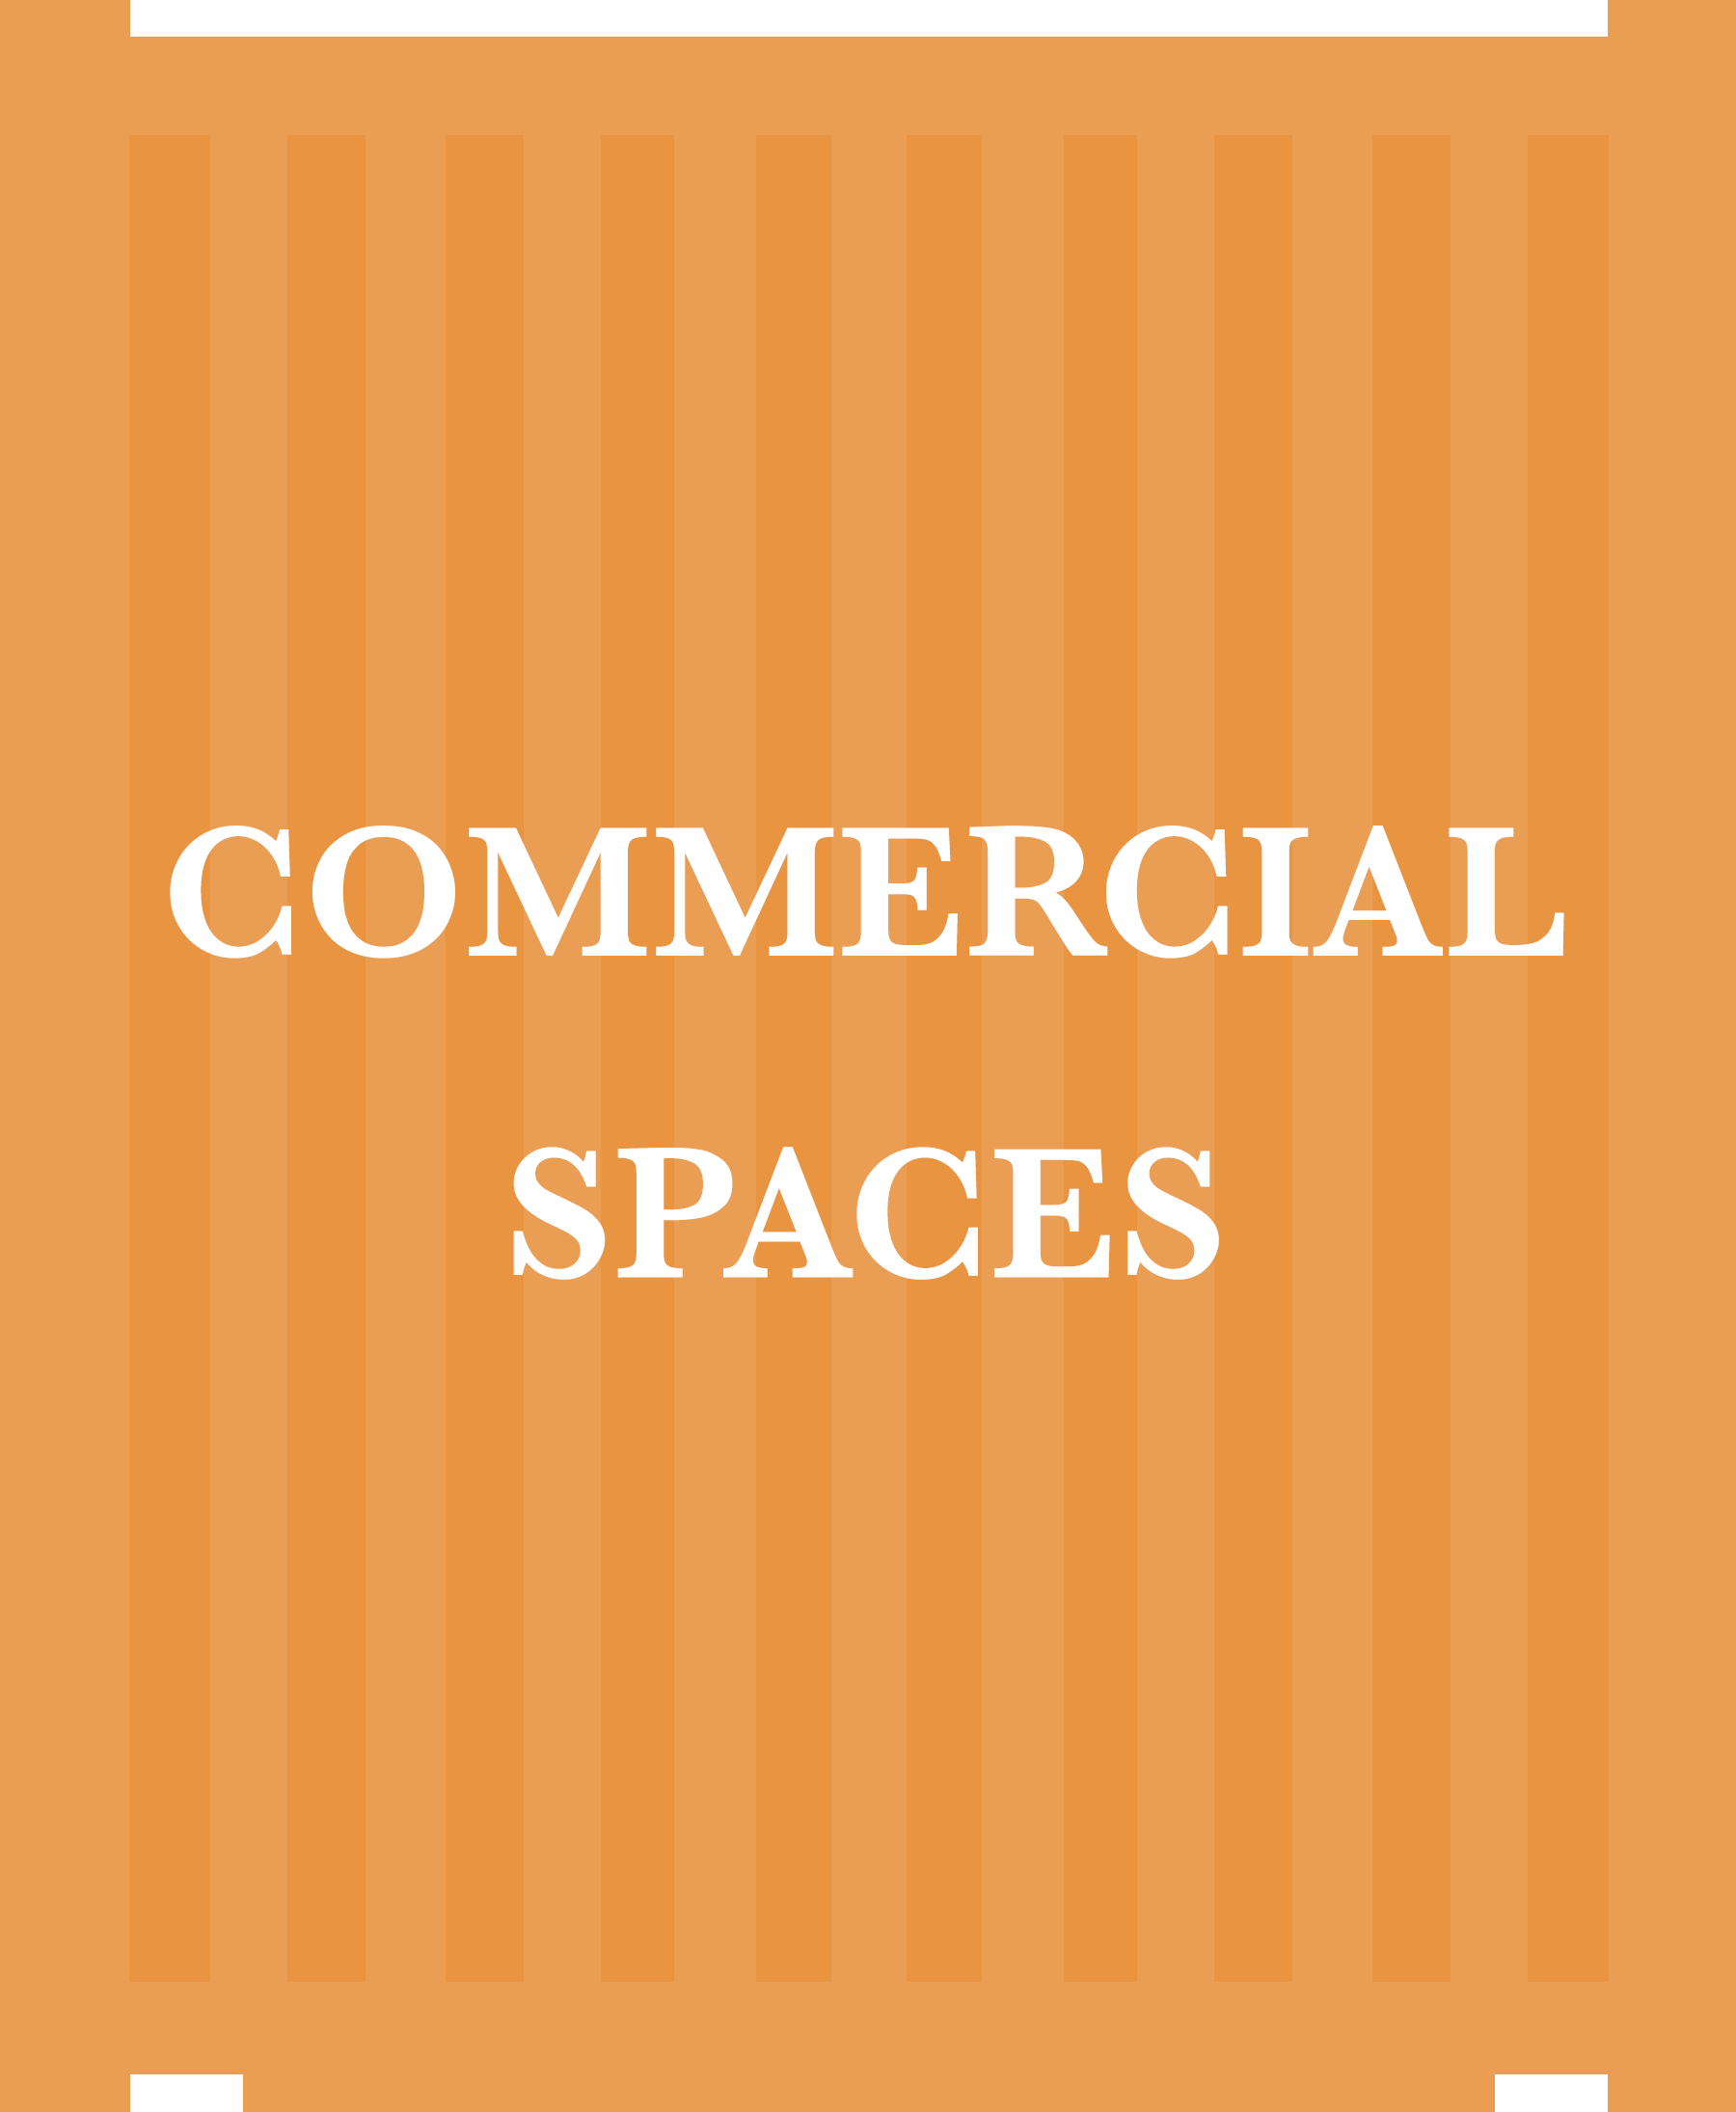 1COMMERCIAL SPACES